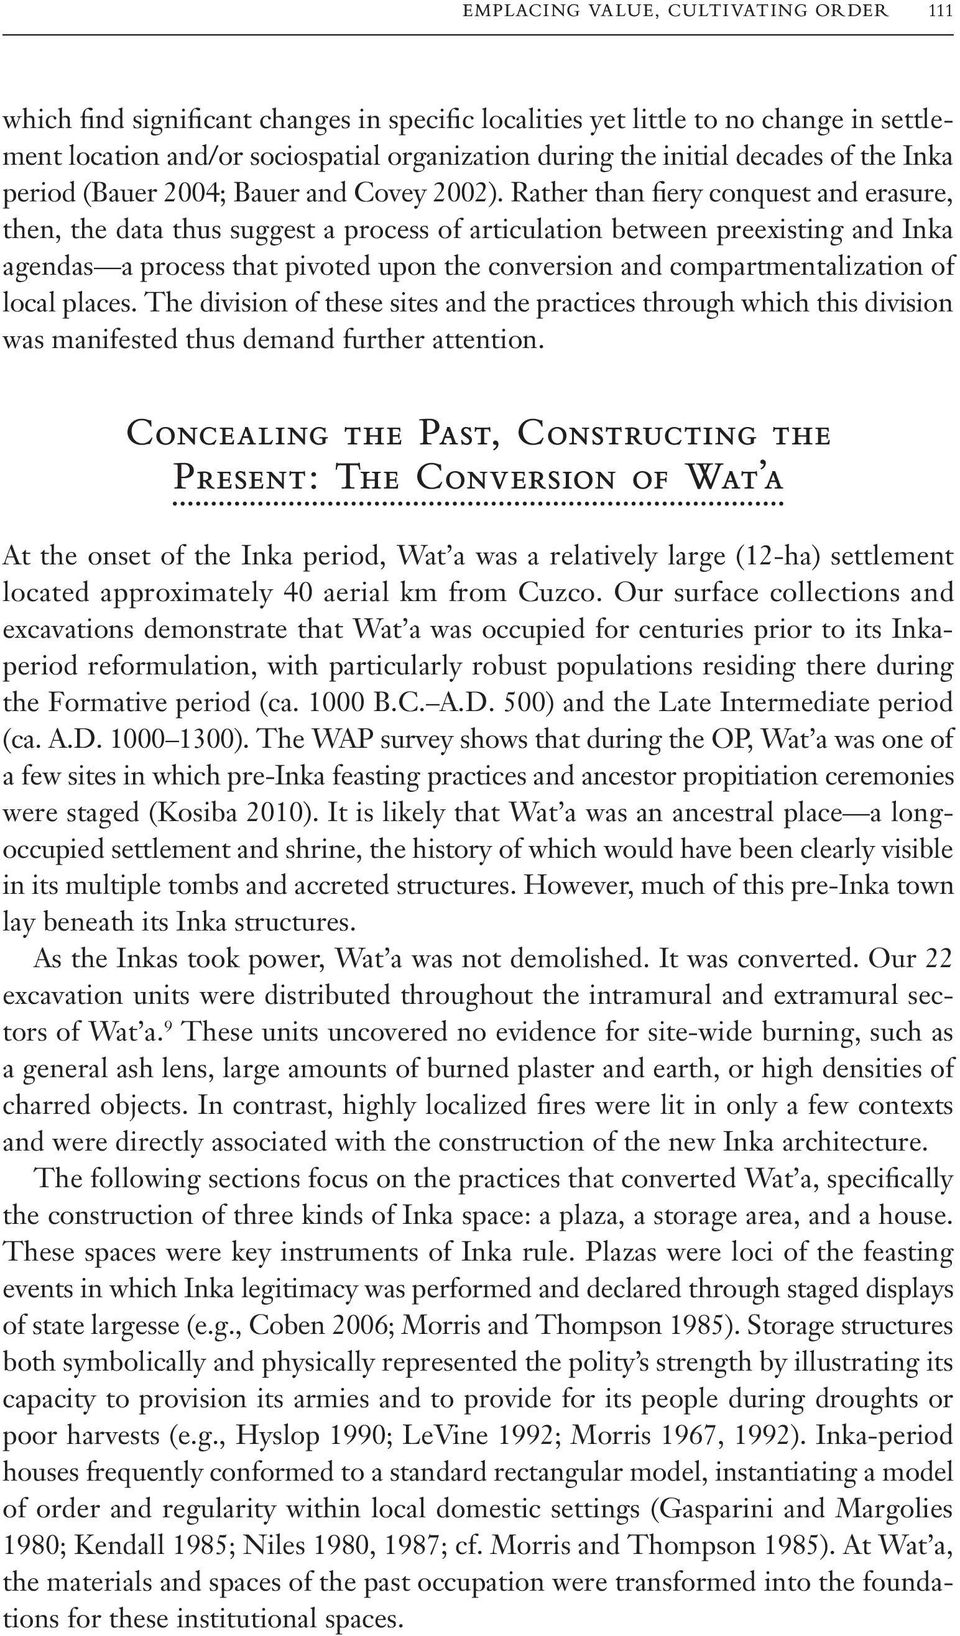 Rather than fiery conquest and erasure, then, the data thus suggest a process of articulation between preexisting and Inka agendas a process that pivoted upon the conversion and compartmentalization